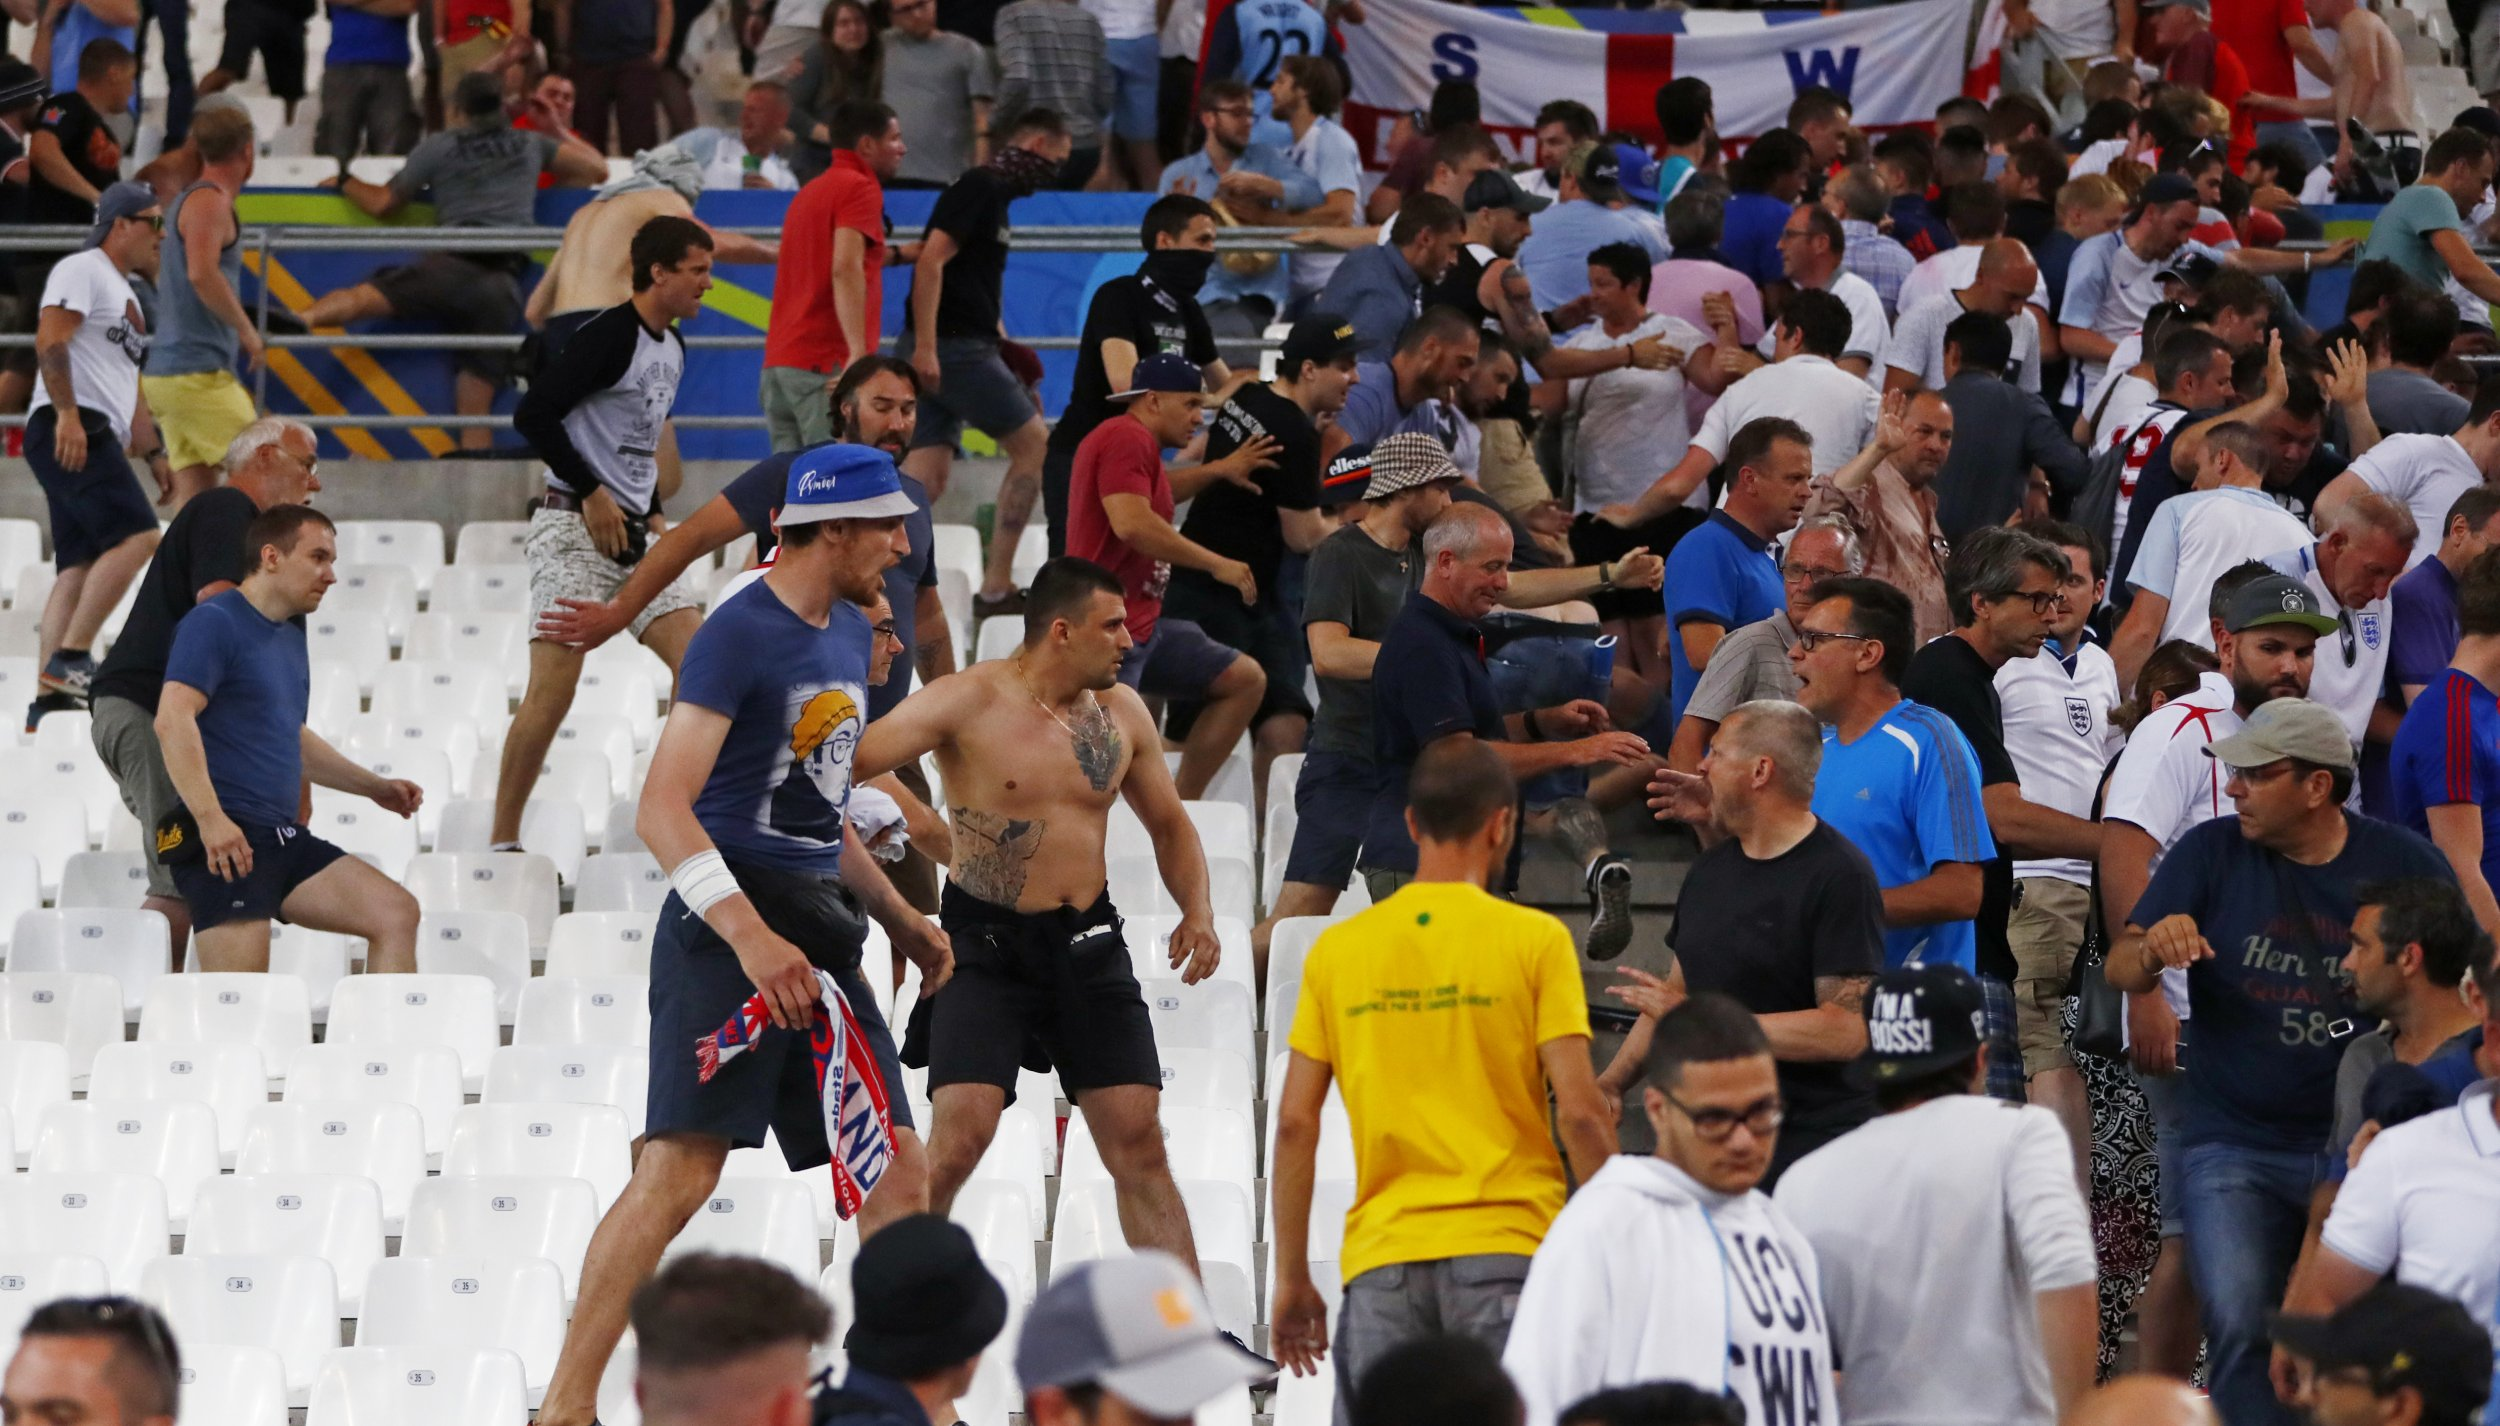 Russian and English fans fight